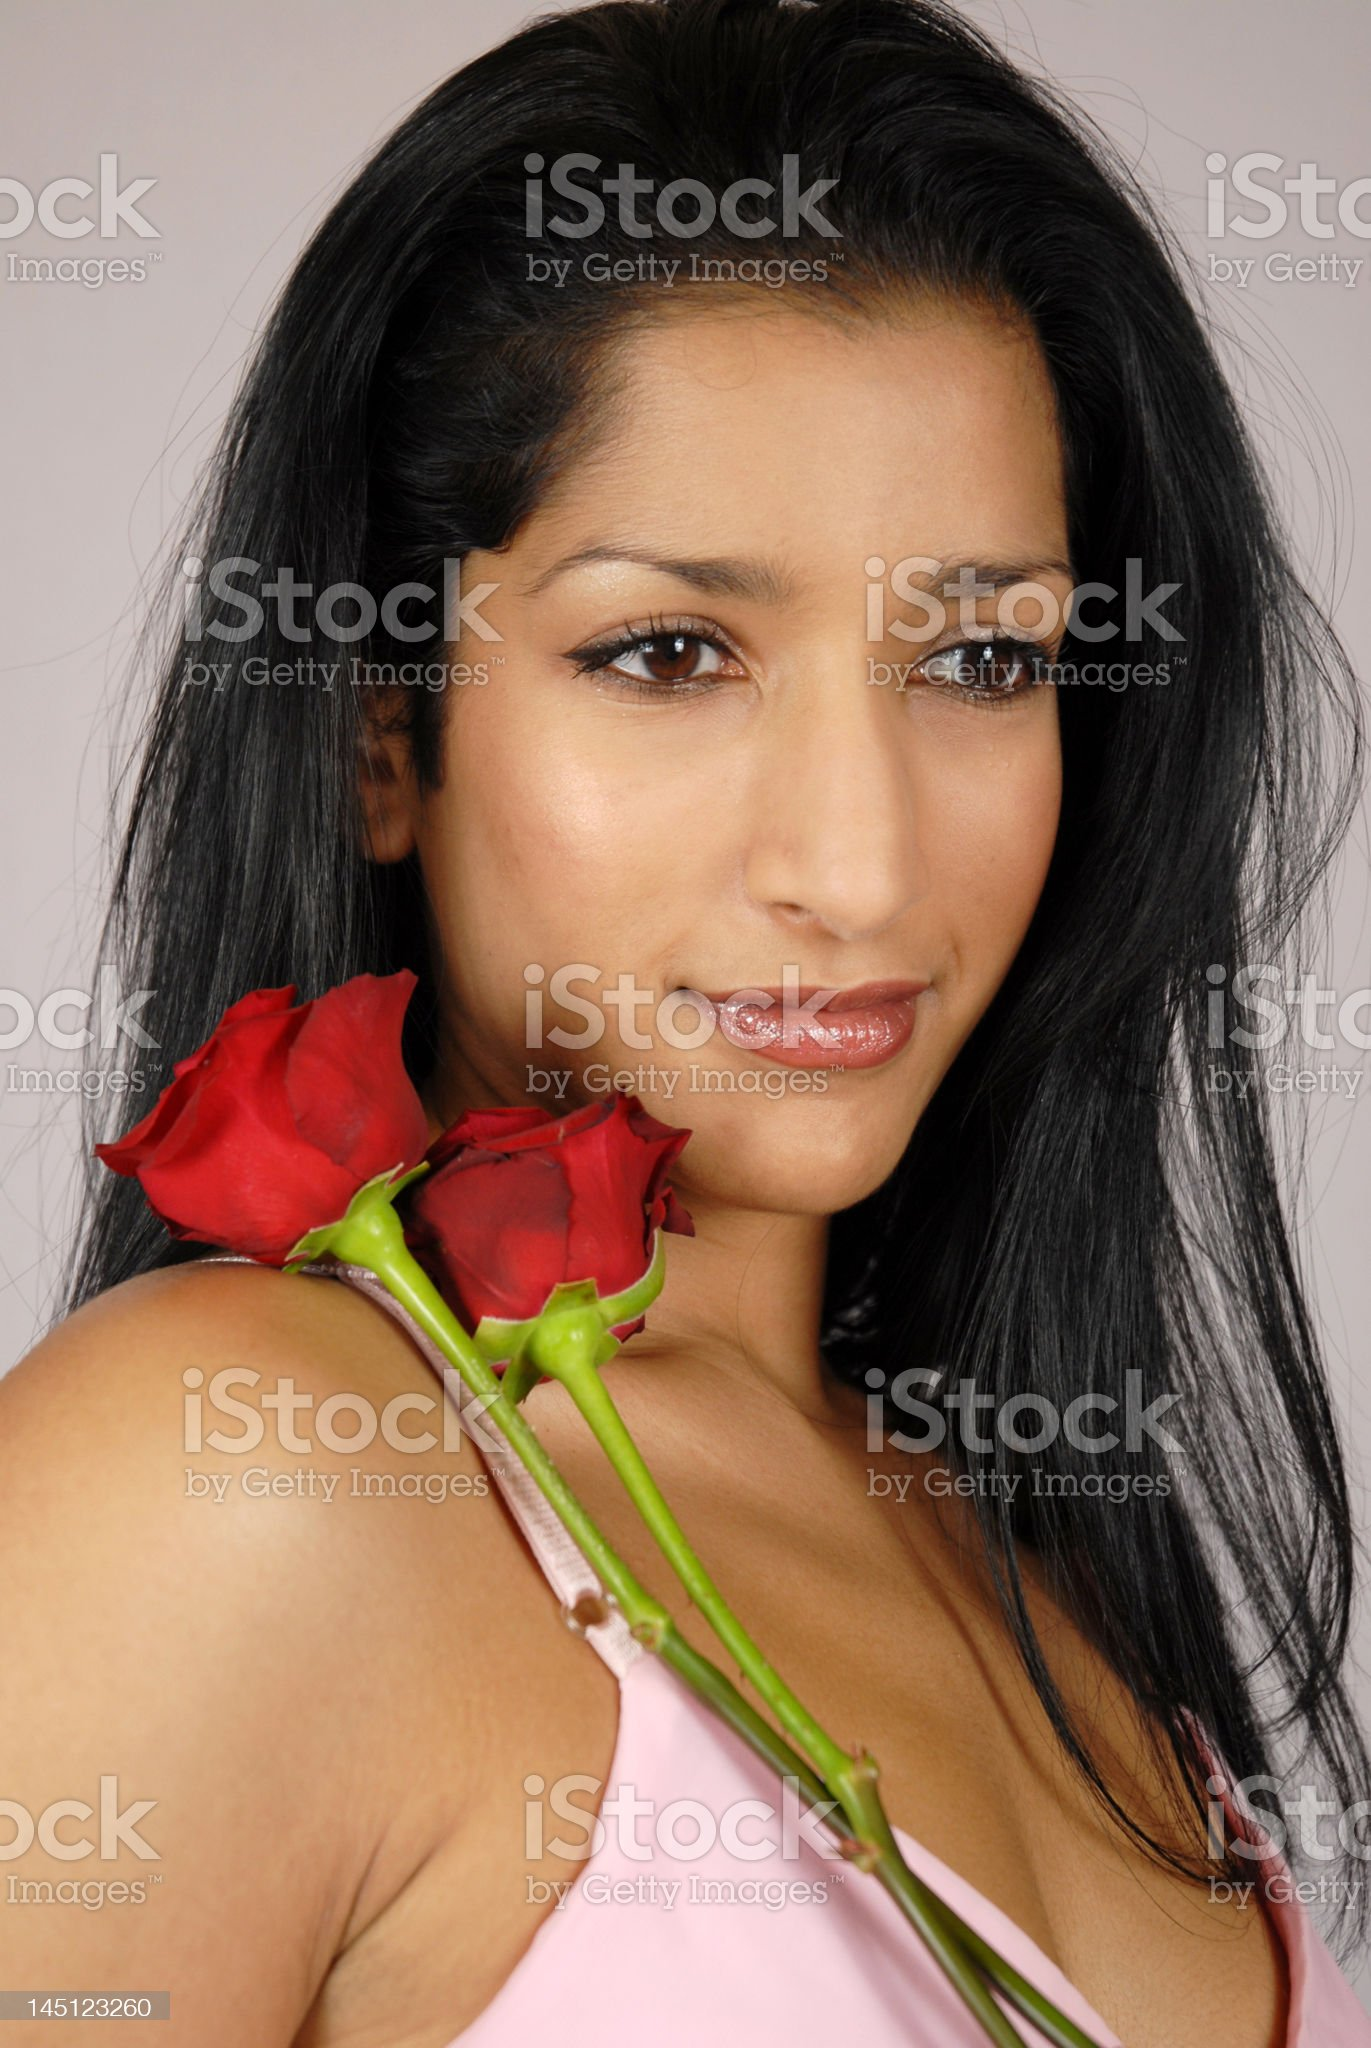 Girl with Red Roses royalty-free stock photo